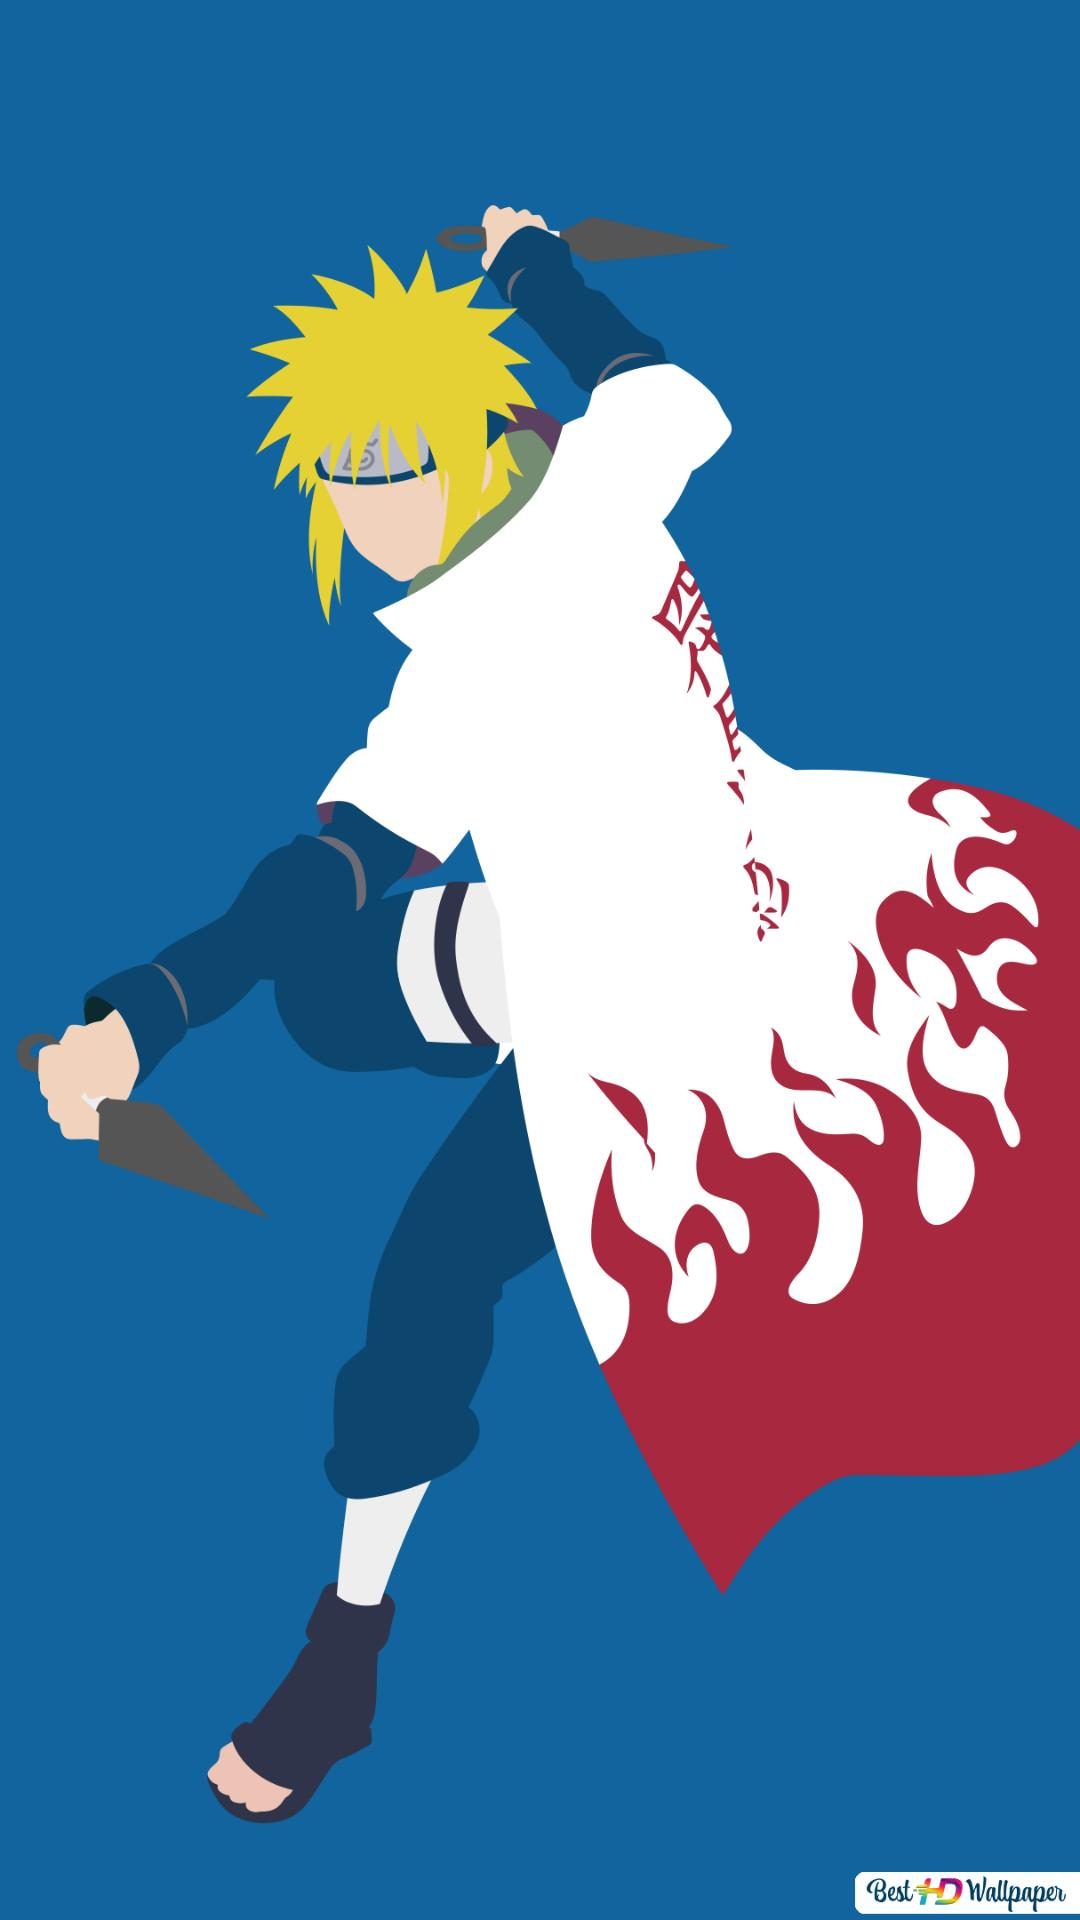 Naruto Wallpaper Iphone 5c Wallpapersimages Org